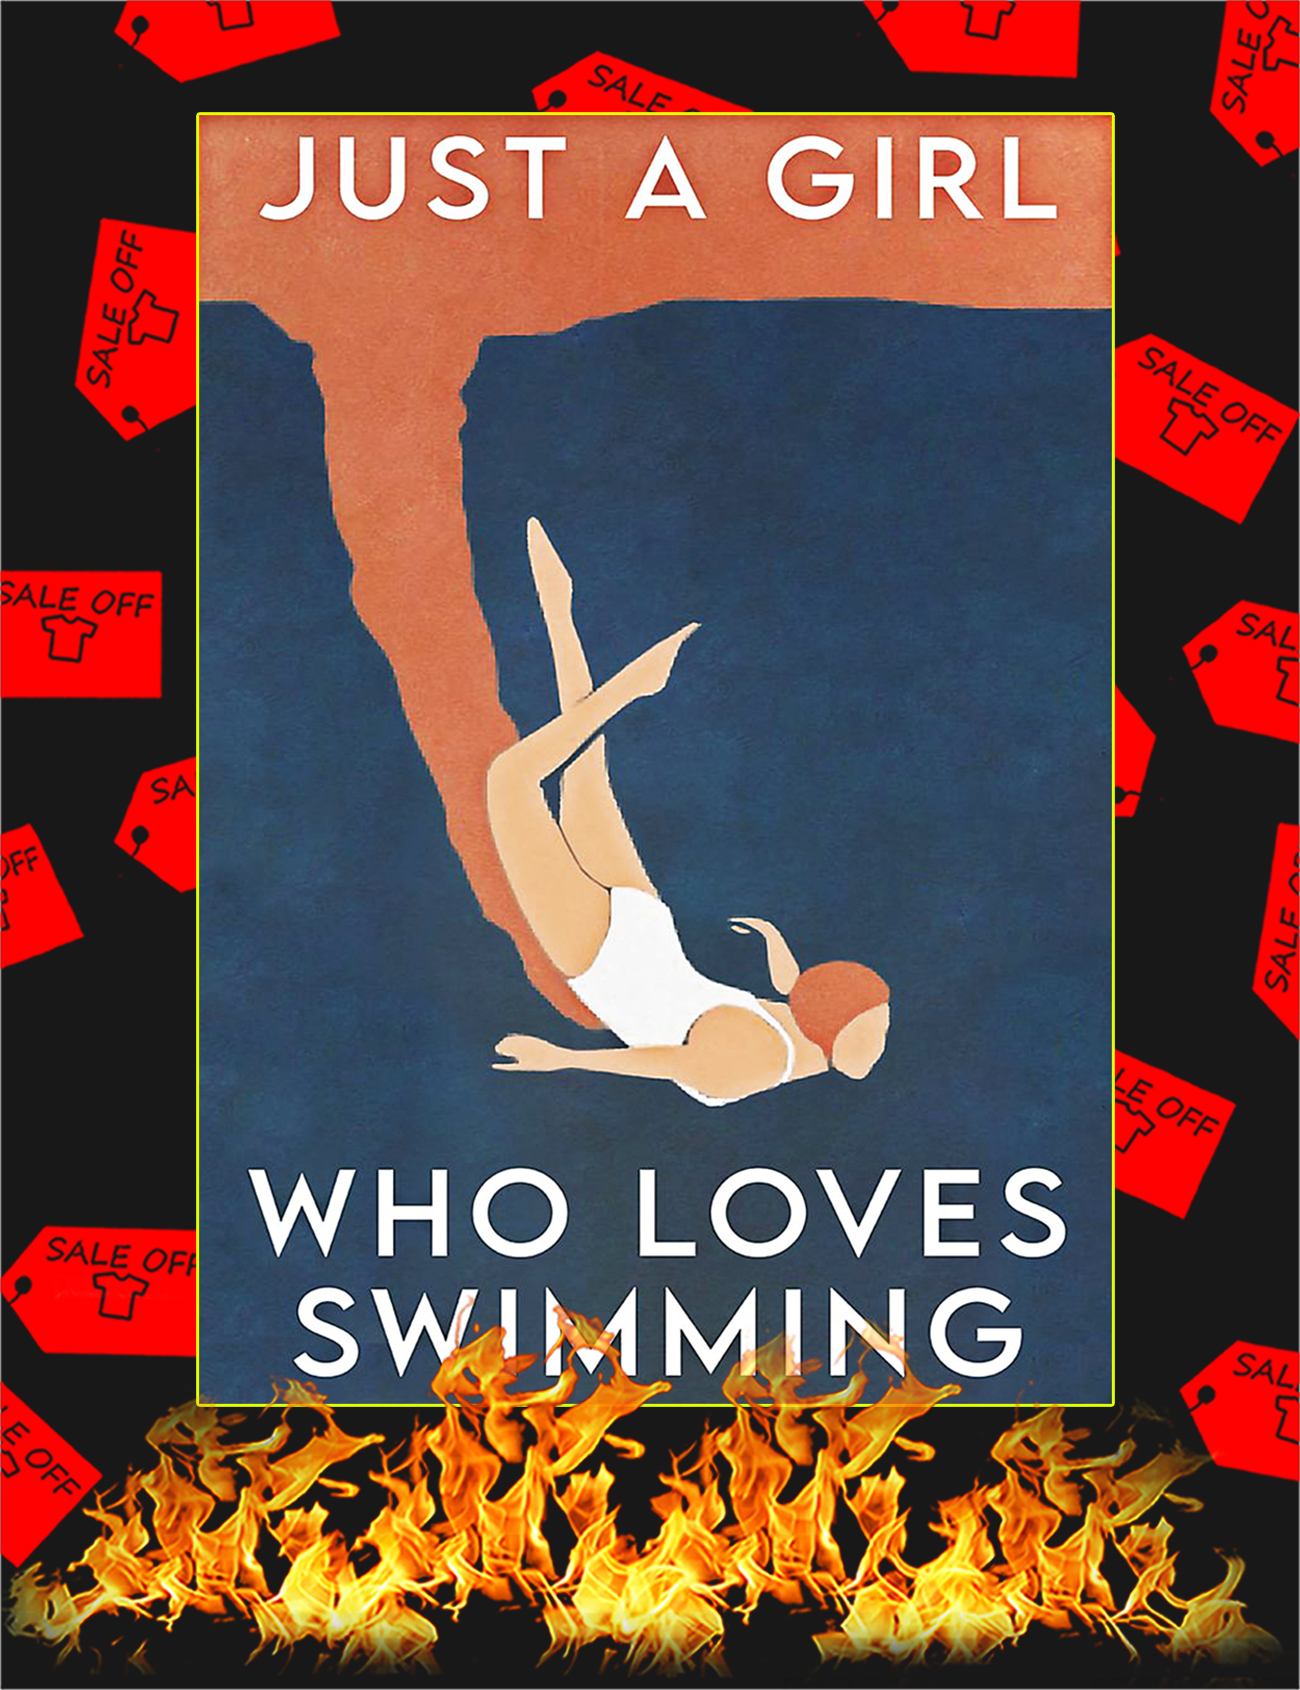 Just a girl who loves swimming poster - A1